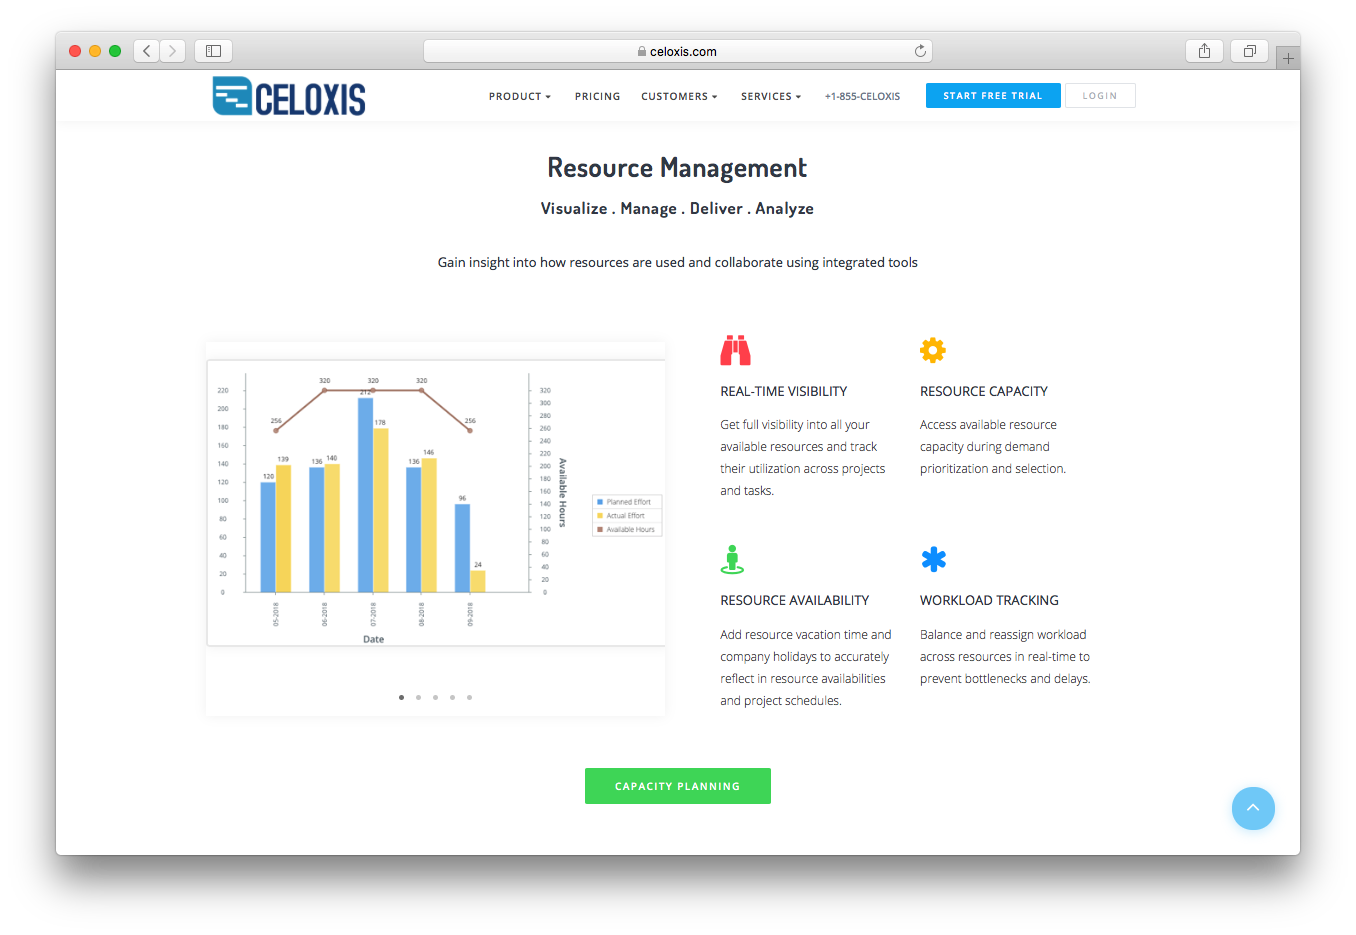 Celoxis resource management visualize manage deliver analyze